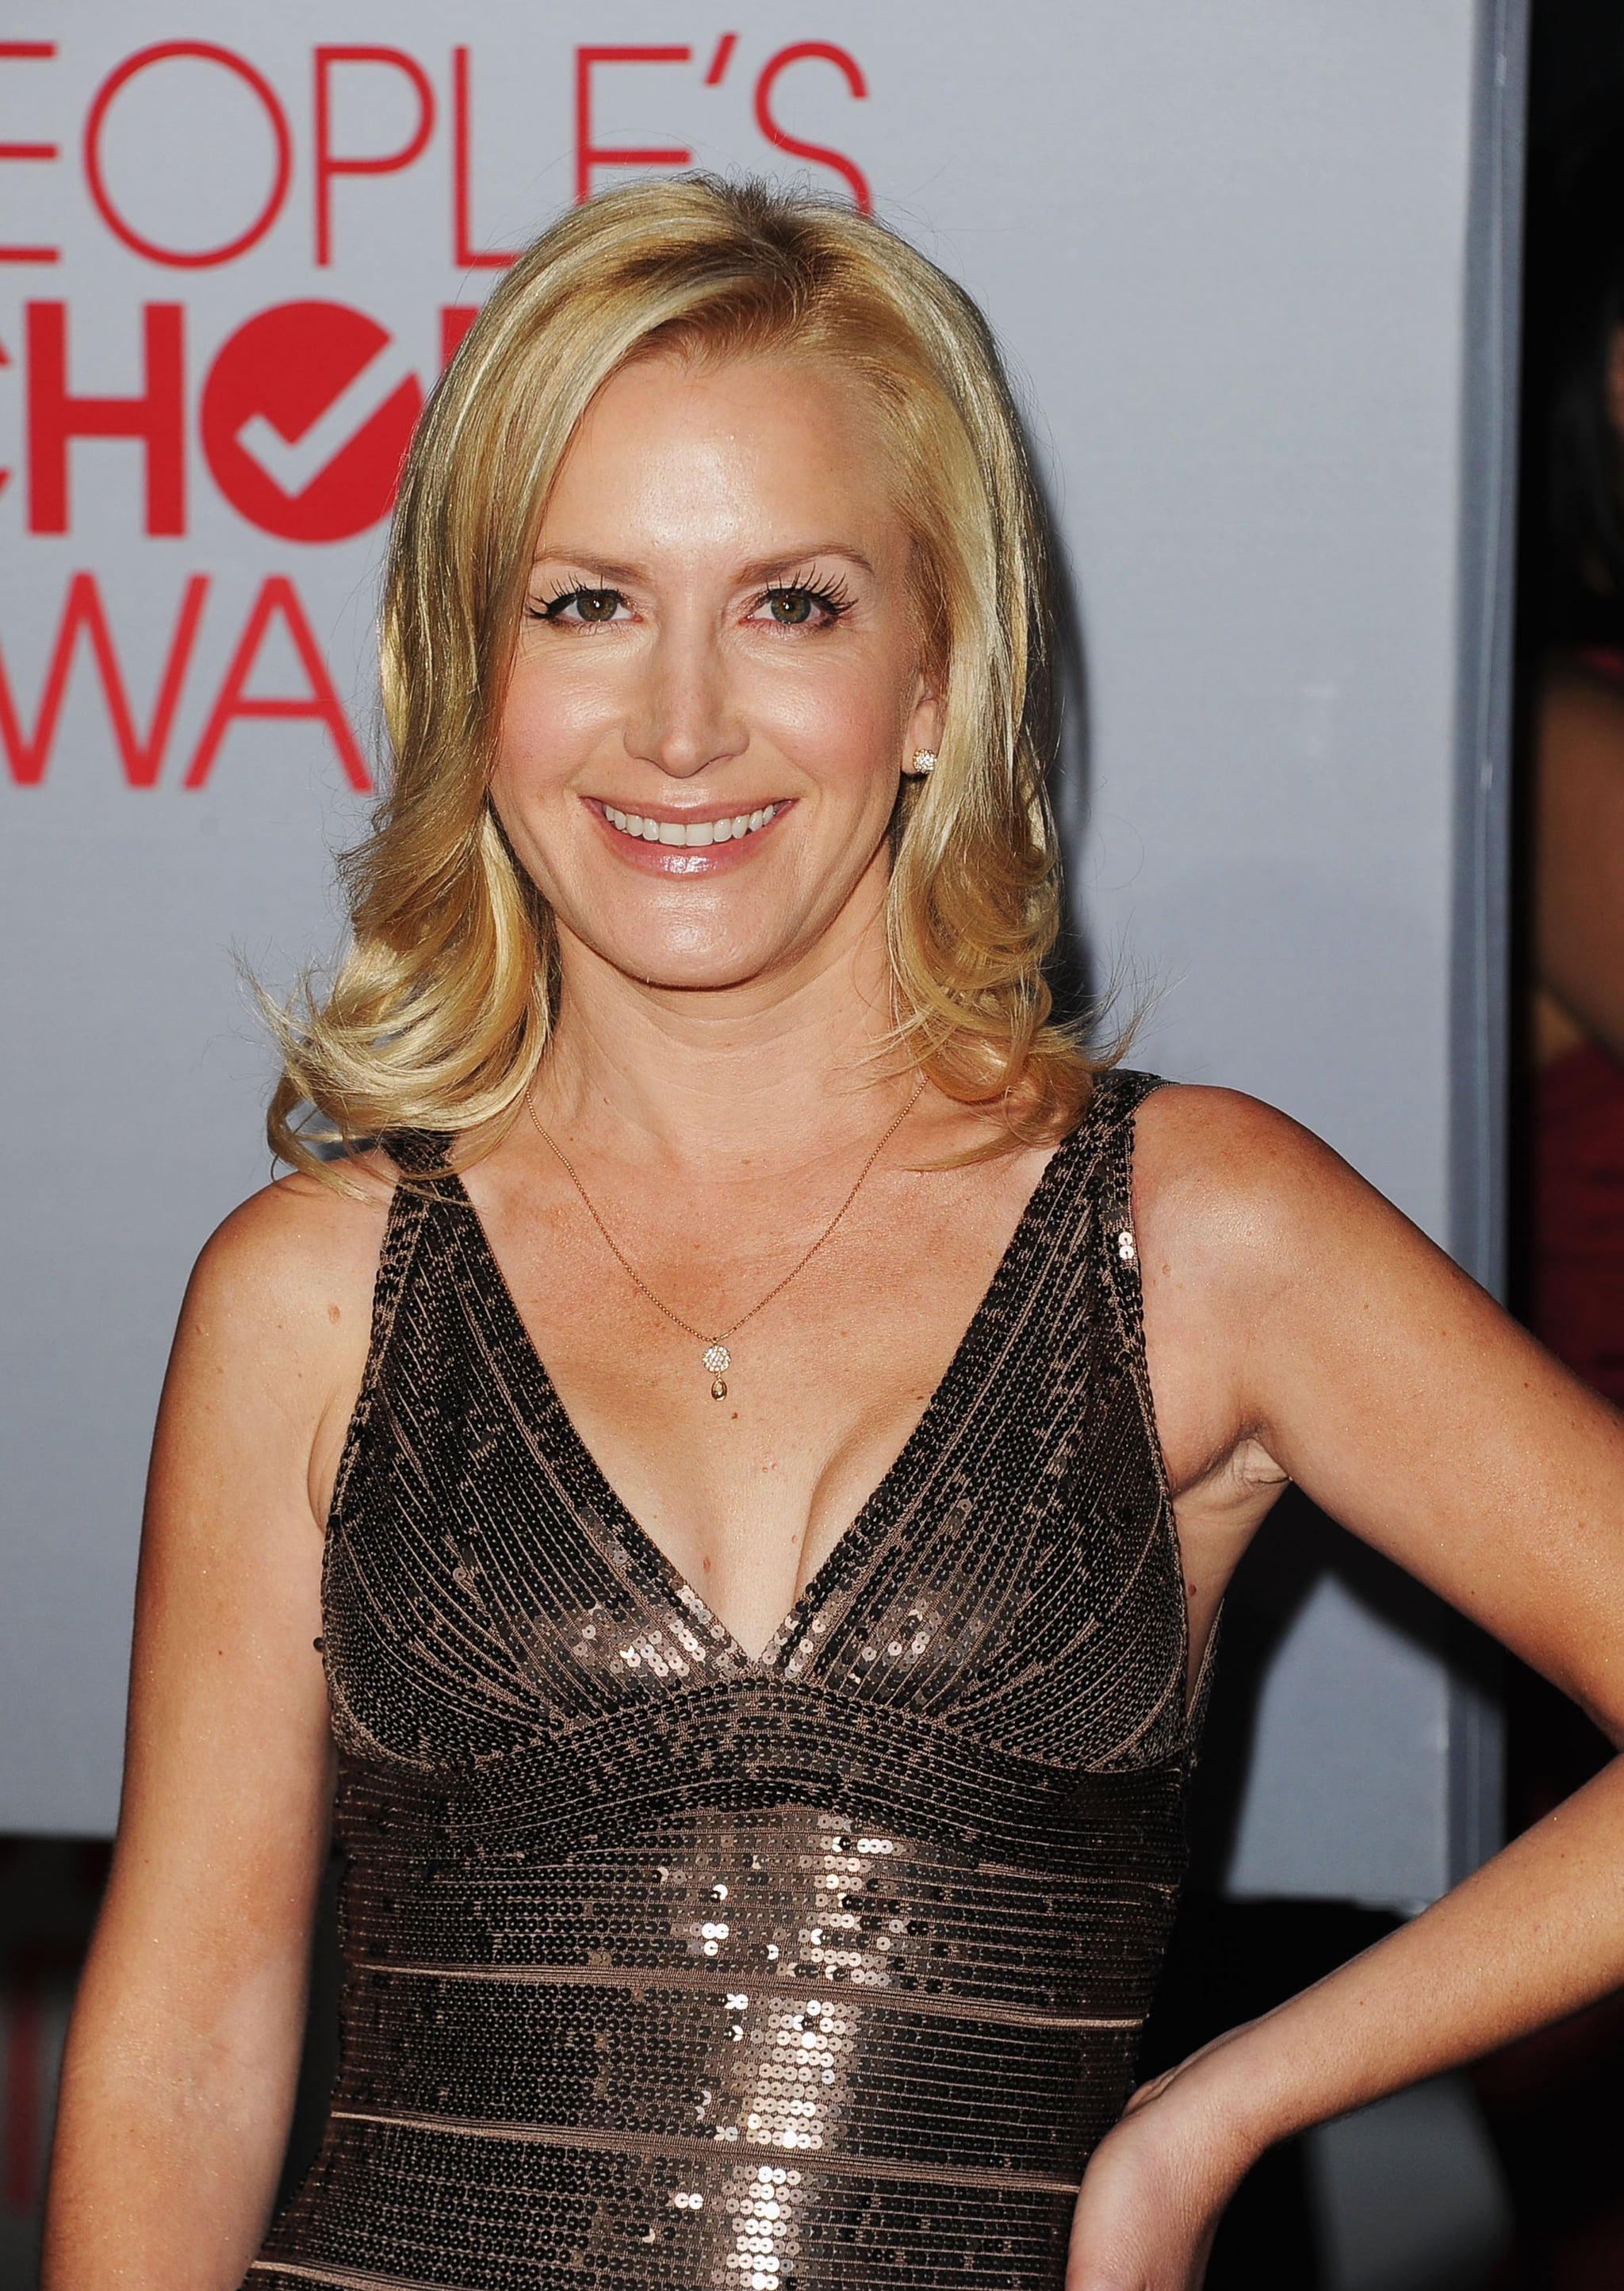 Angela Kinsey at an award show.